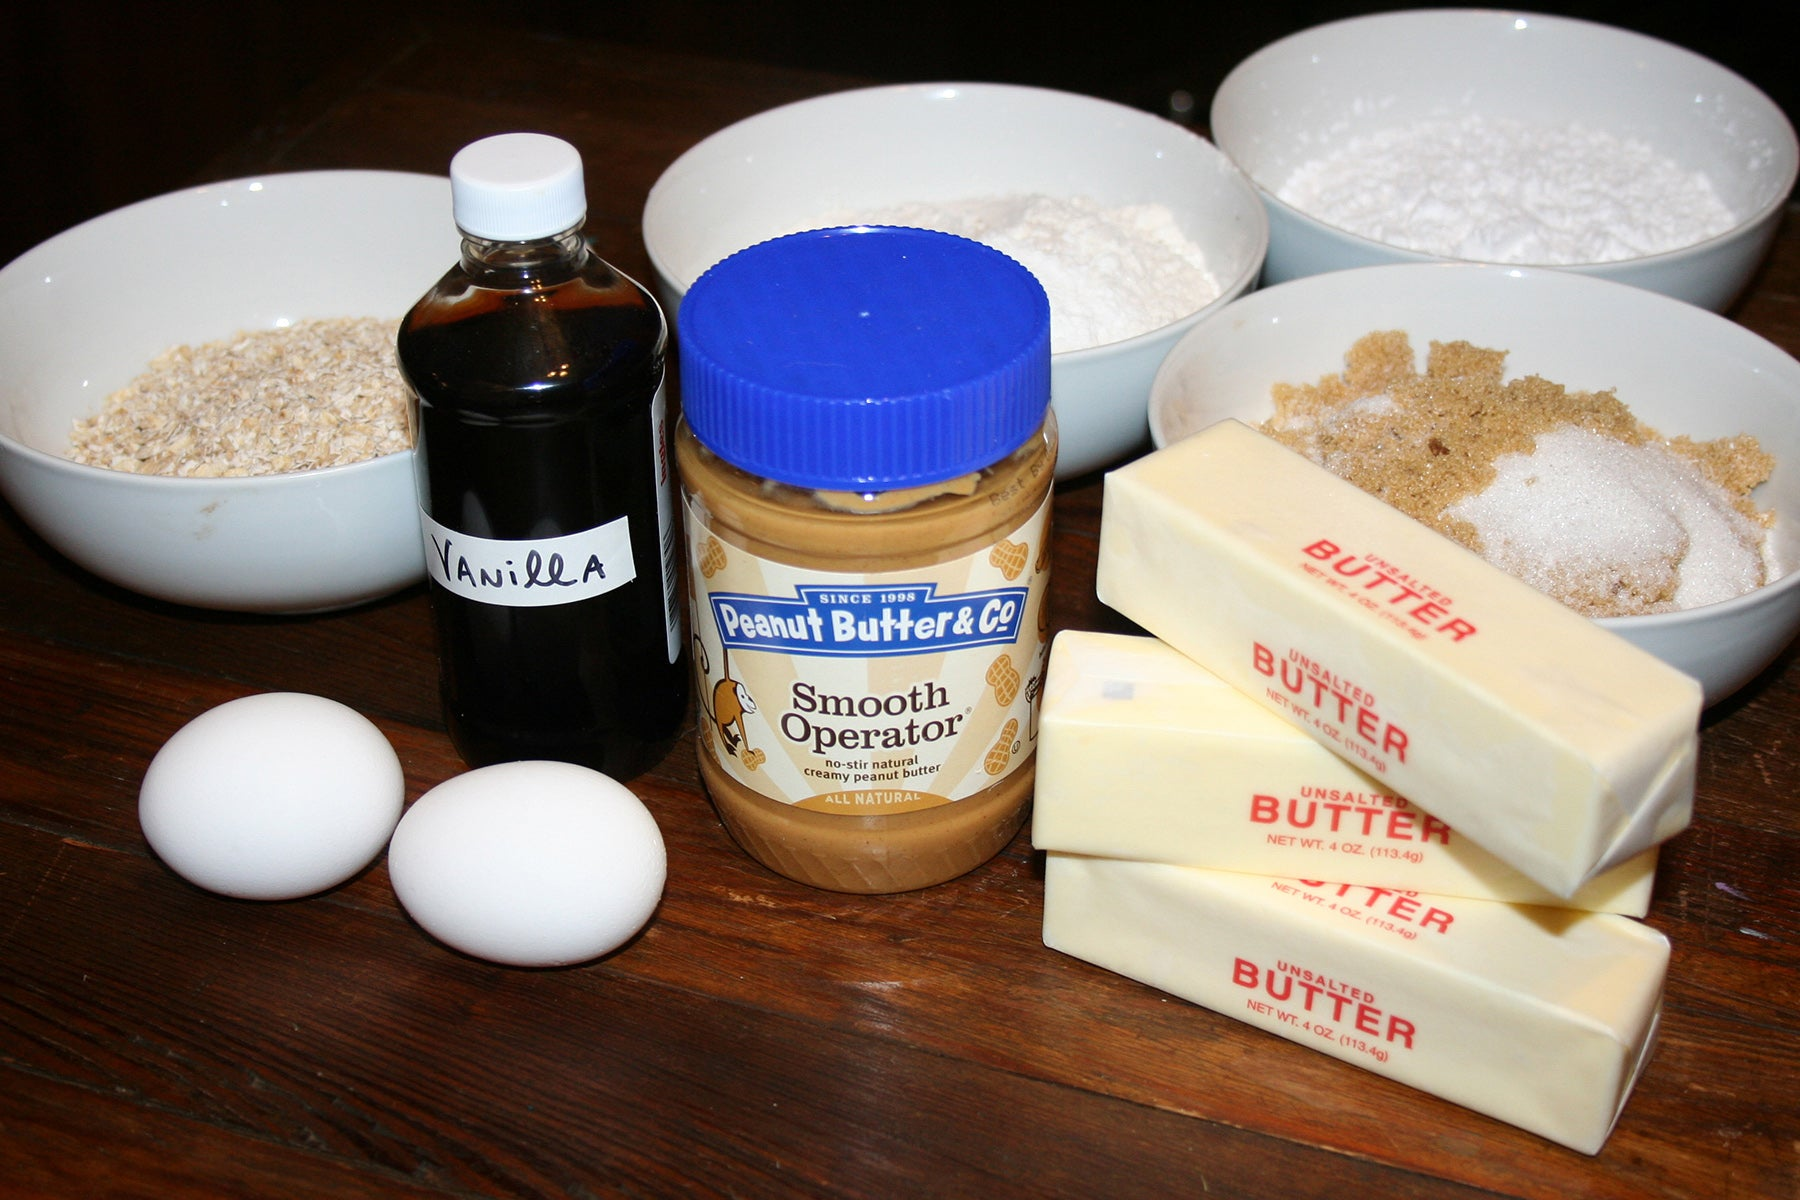 Homemade Girl Scout Cookies: Smooth Operator Do-Si-Dos® Ingredients - Peanut Butter & Co. Smooth Operator peanut butter